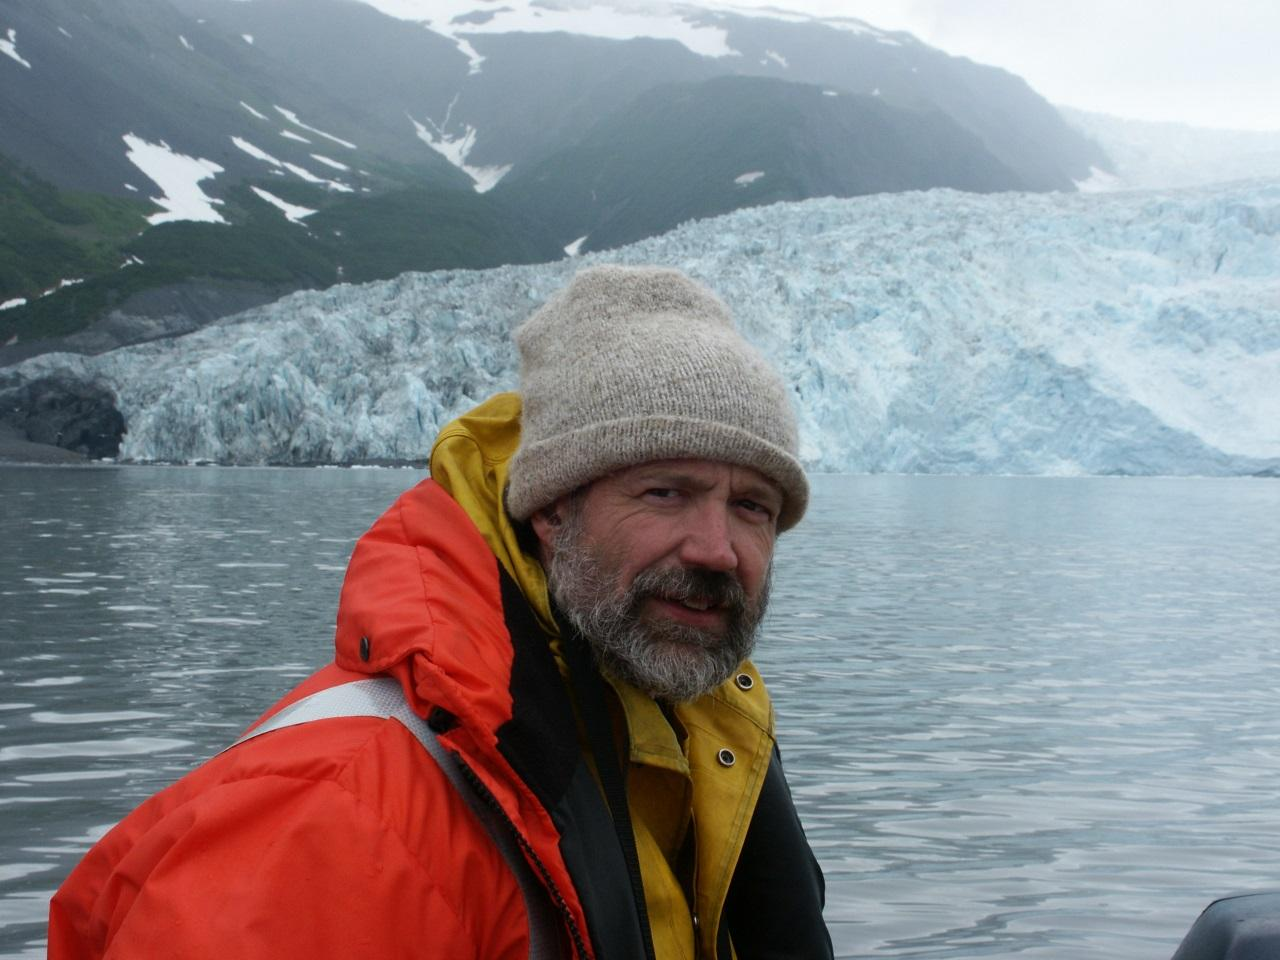 Aron Crowell photographed at Aialik Glacier on the outer coast of the Kenai Peninsula, southern Alaska in 2004. Crowell was leading archaeological fieldwork at archaeological village sites of the Sugpiaq people in Aialik Bay. Photo credit: Mark Luttrell.